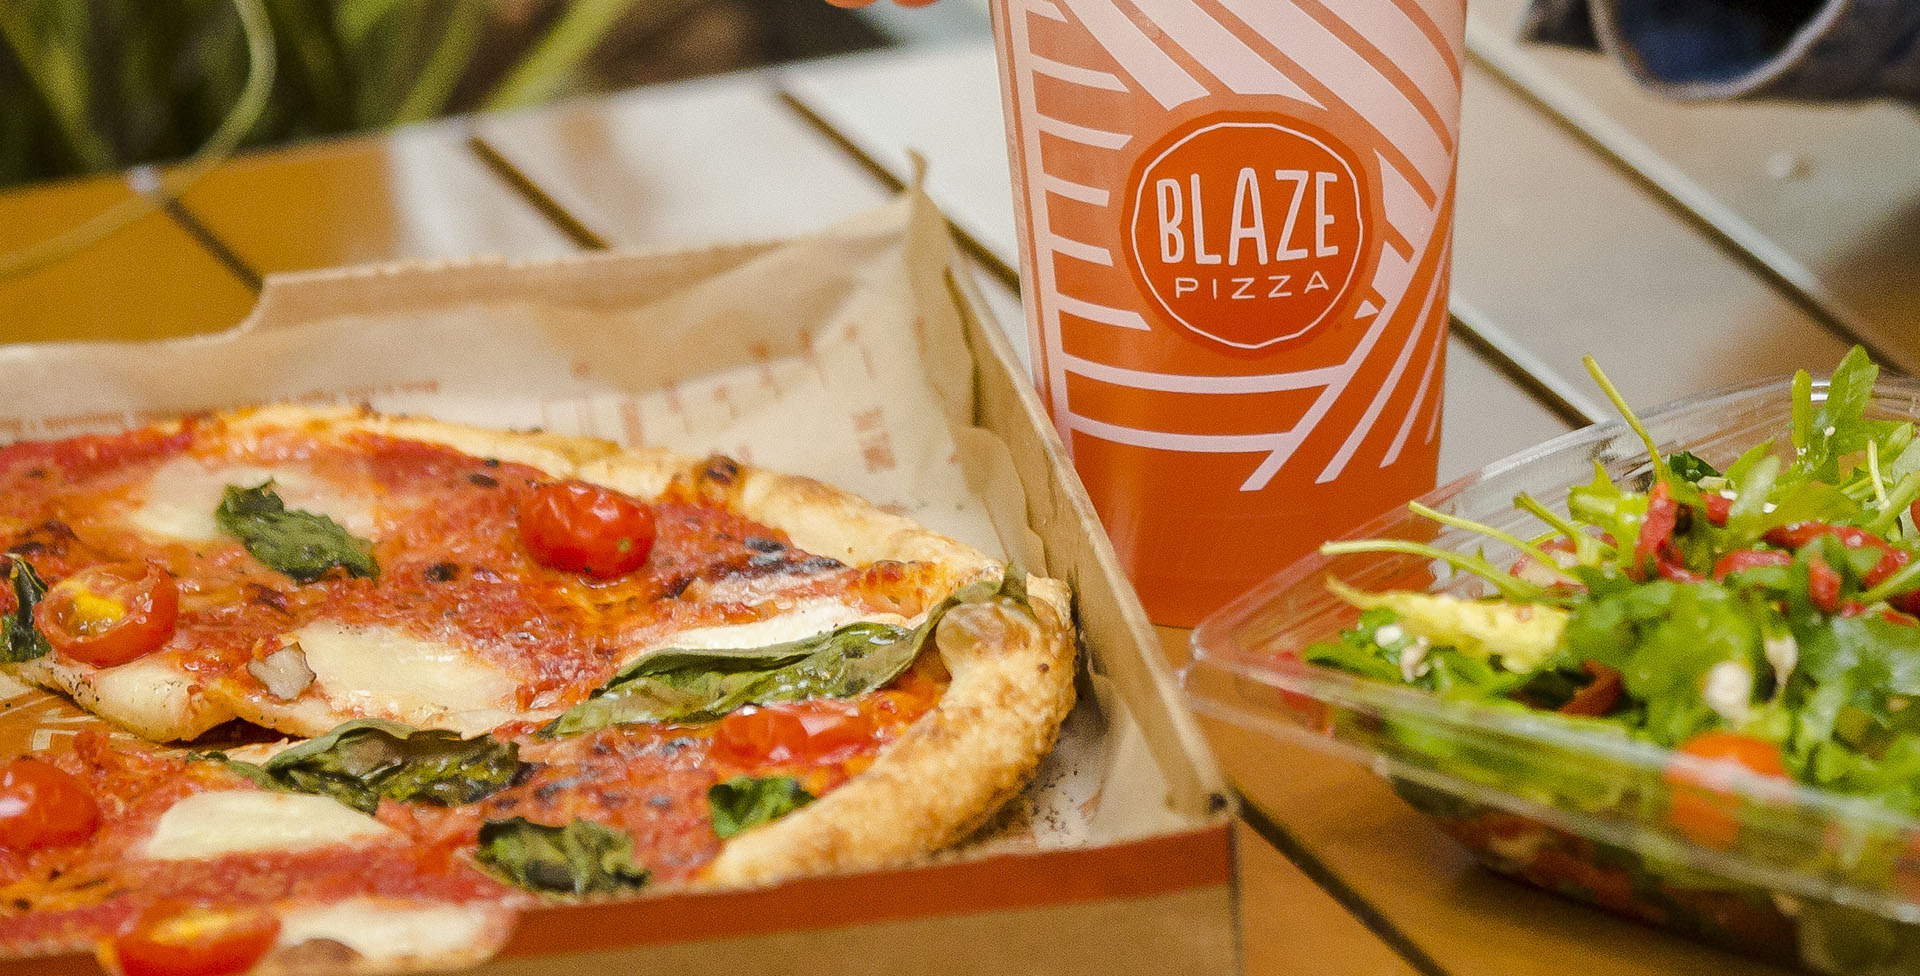 BLAZE pizza, drink and salad